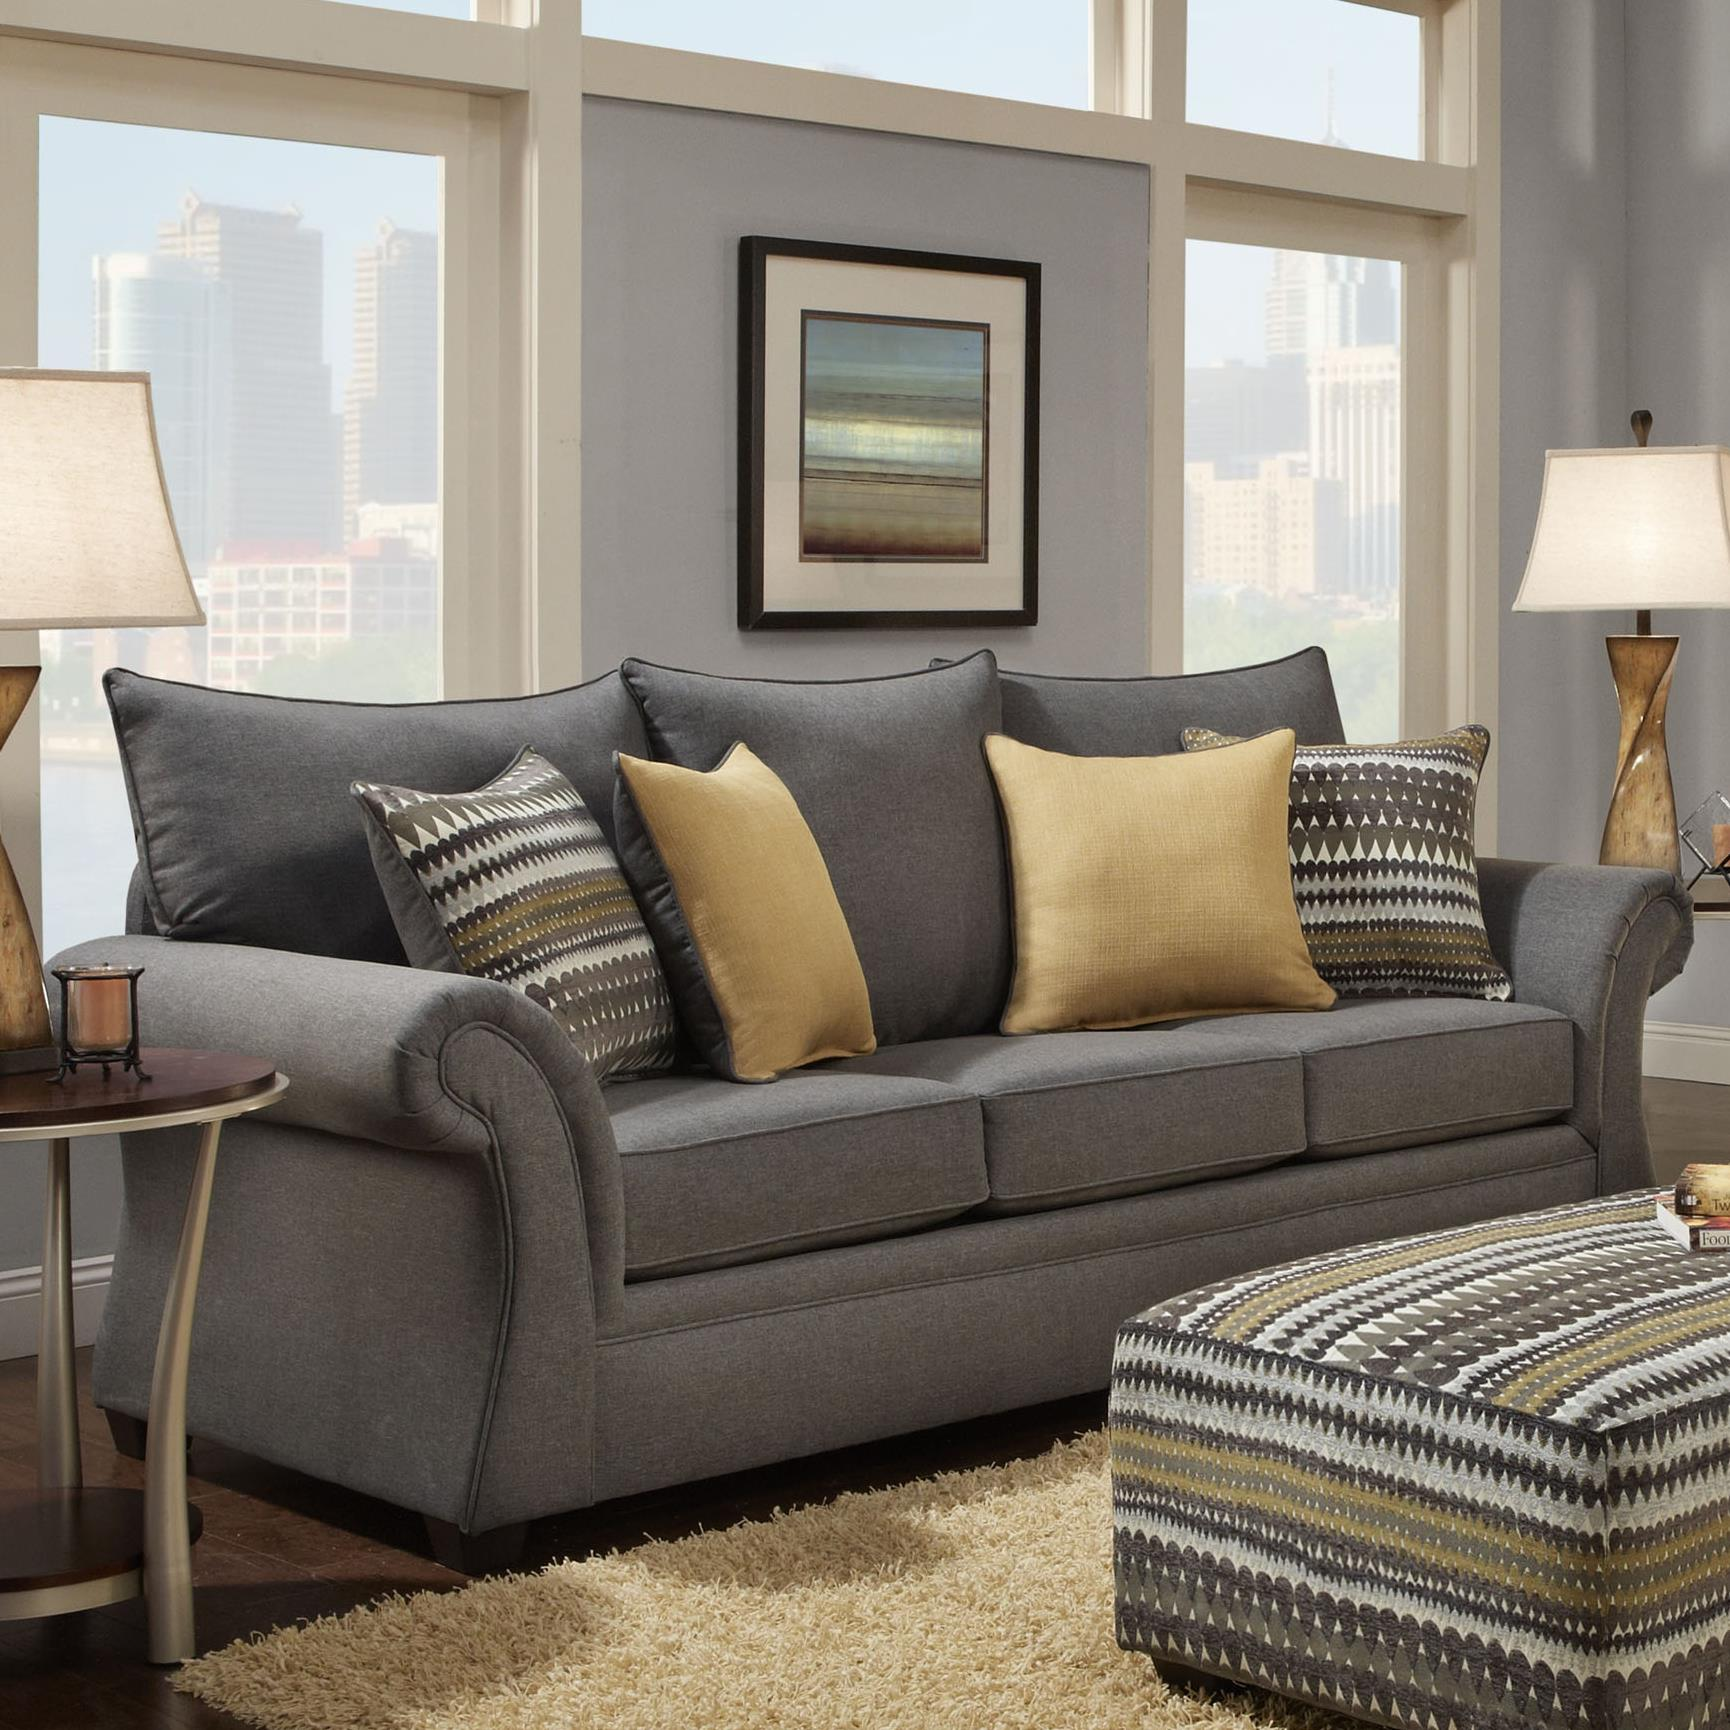 Washington Furniture 1560 Sofa - Item Number: 1562-750 Jitterbug Gray